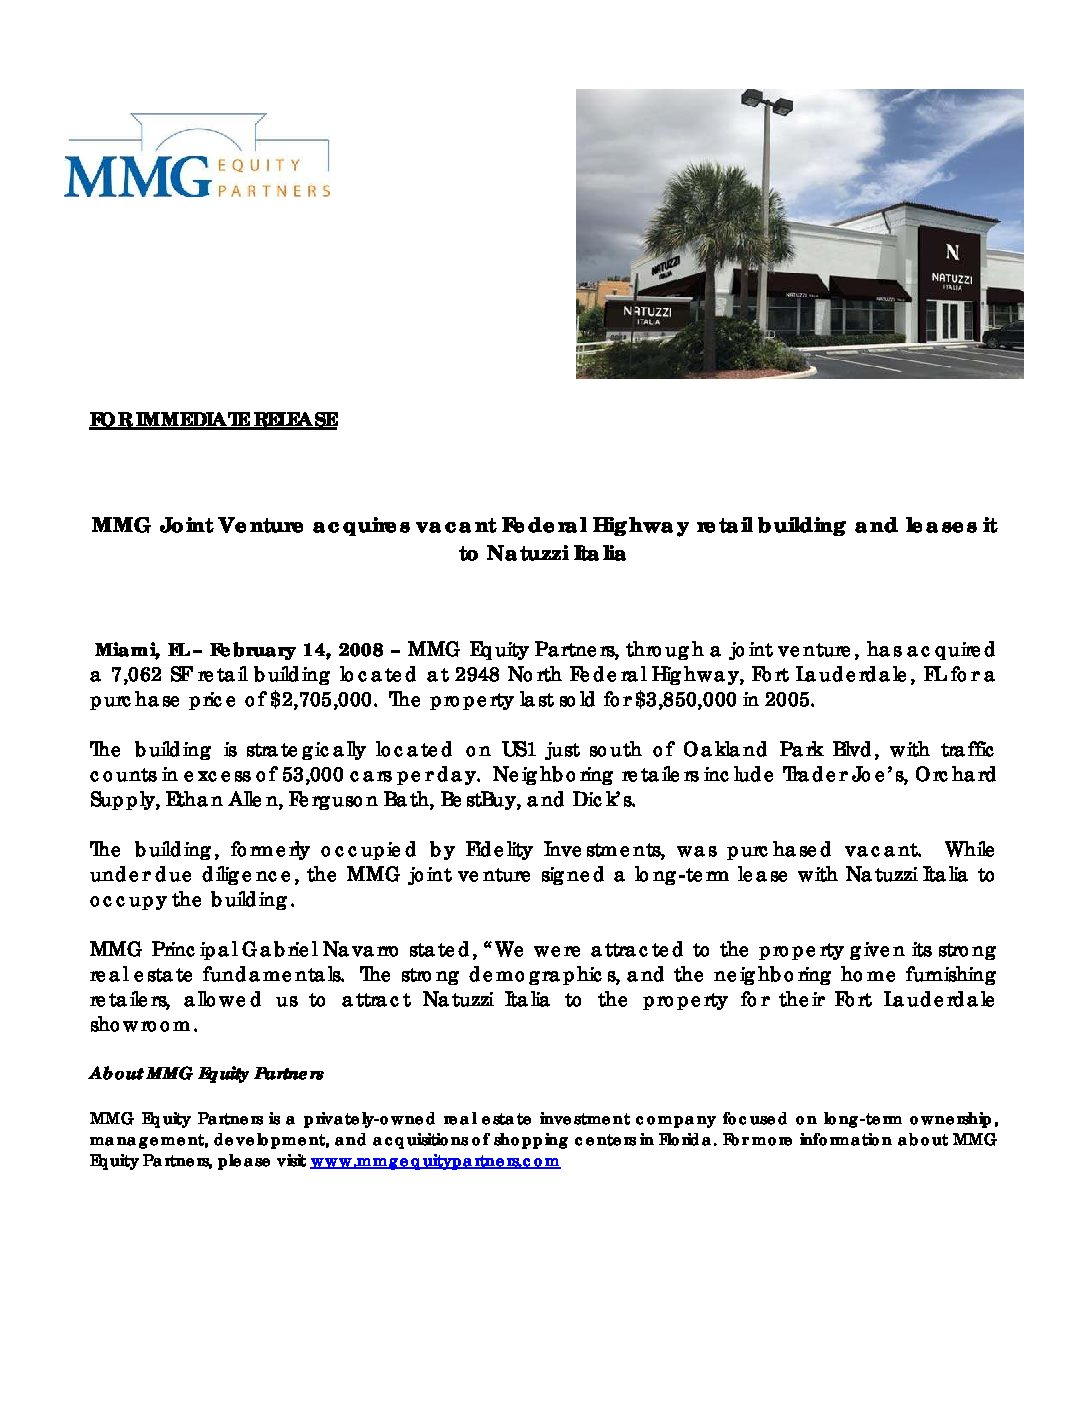 MMG Acquires FLL Retail Building and leases it to Natuzzi SpA